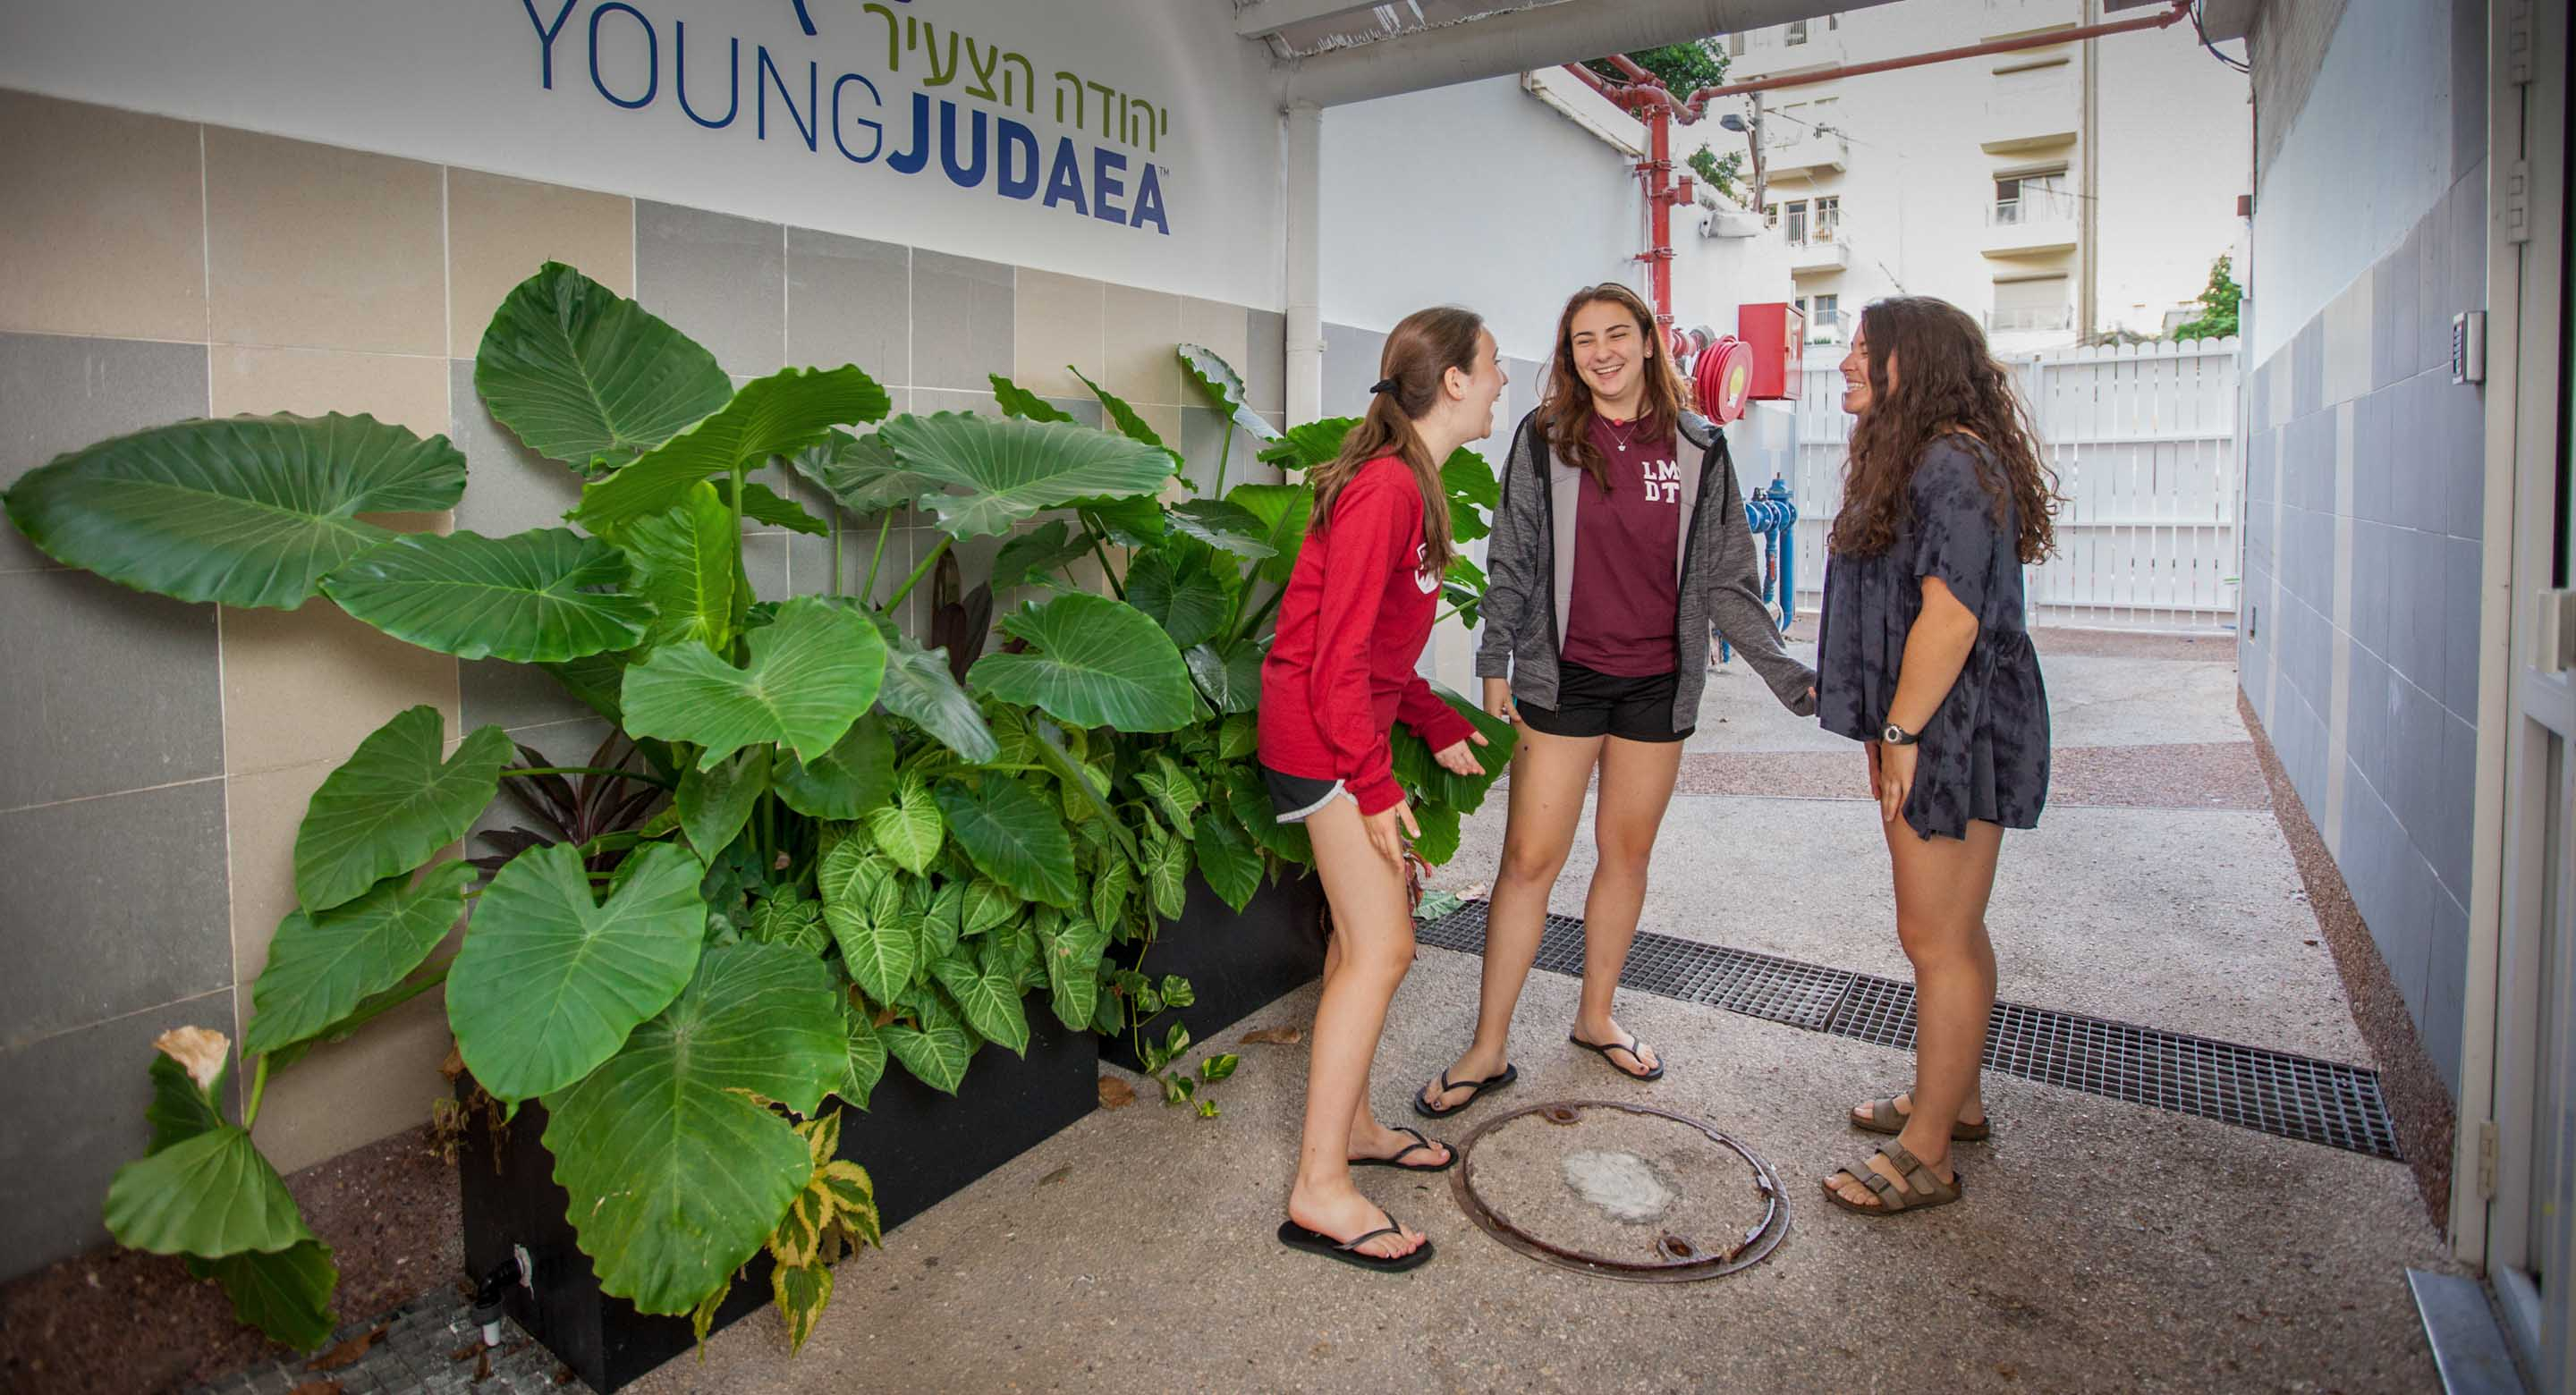 3 teen girls at Young Judaea entrance